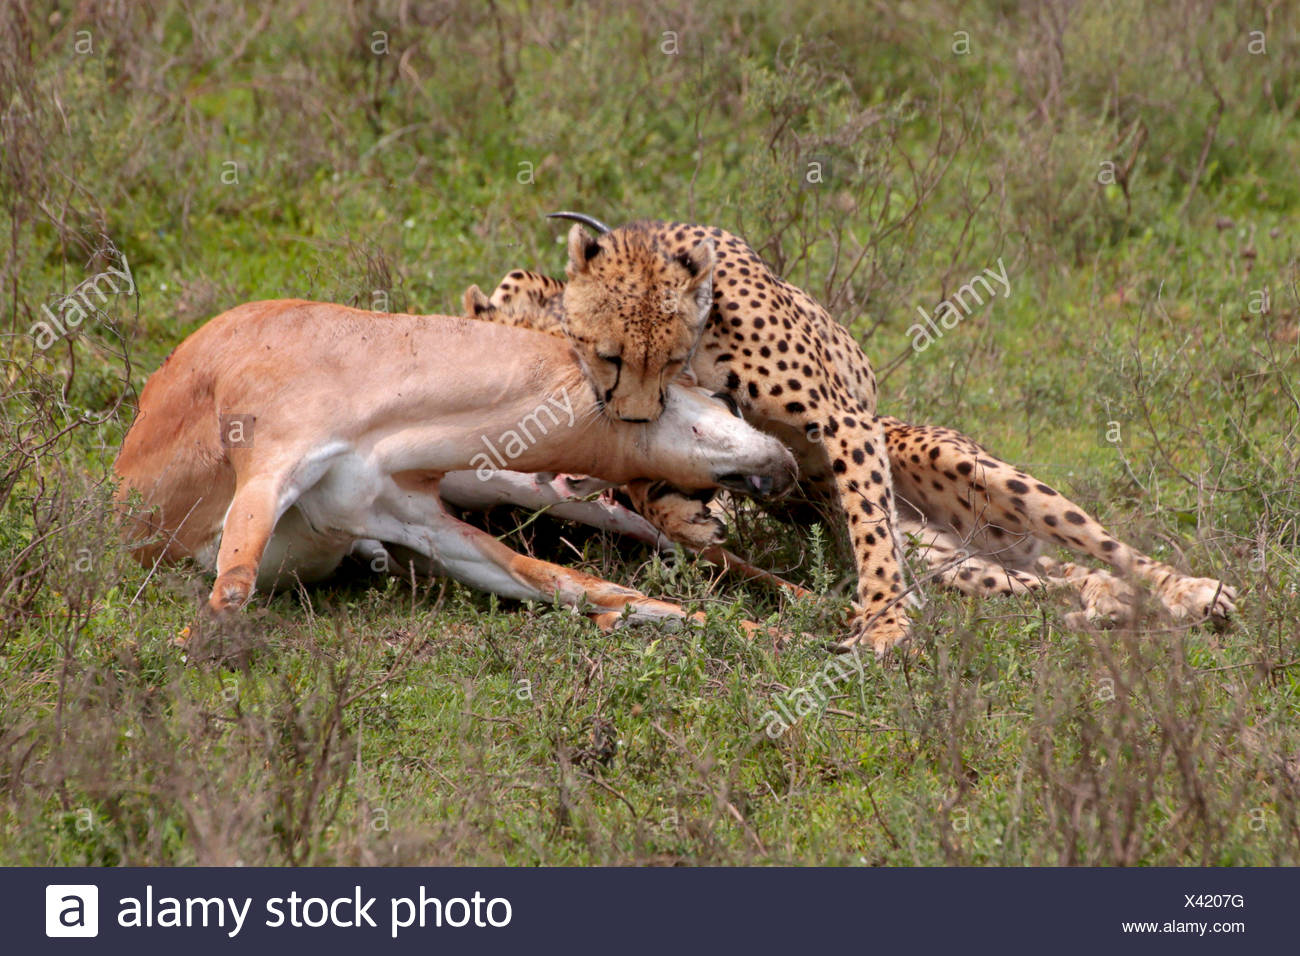 cheetah (Acinonyx jubatus), with caught Grant's gazelle, Tanzania, Serengeti National Park - Stock Image